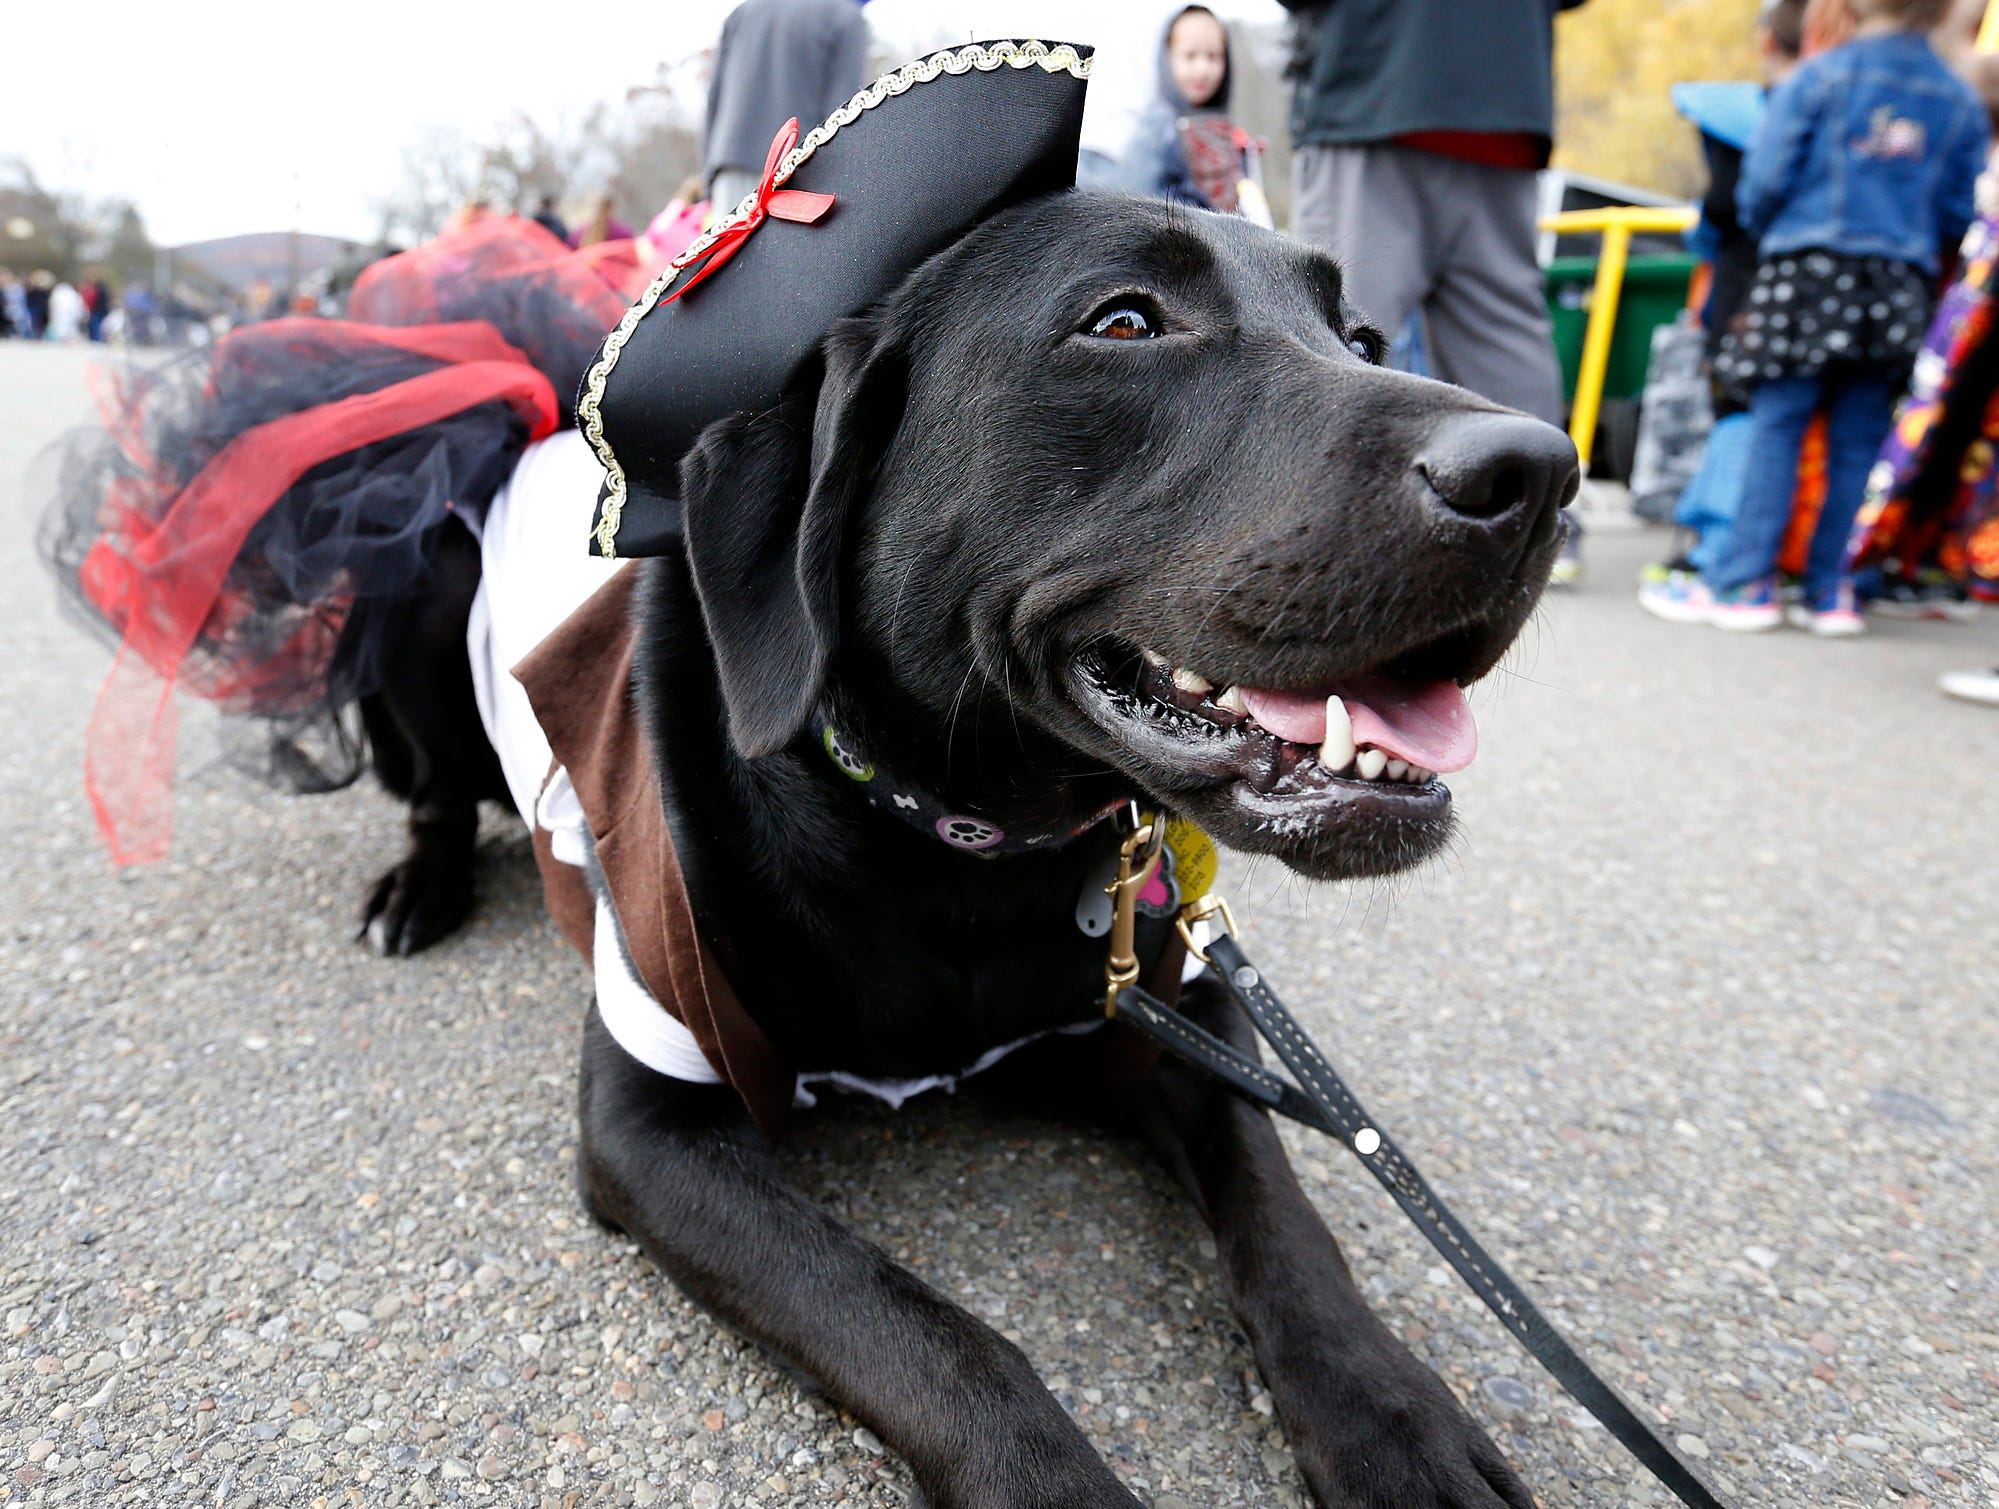 2015: Abby sported her pirate attire Saturday at Southport's Halloween Festival Saturday while working with the YWCA's Reading PAWTners Program.